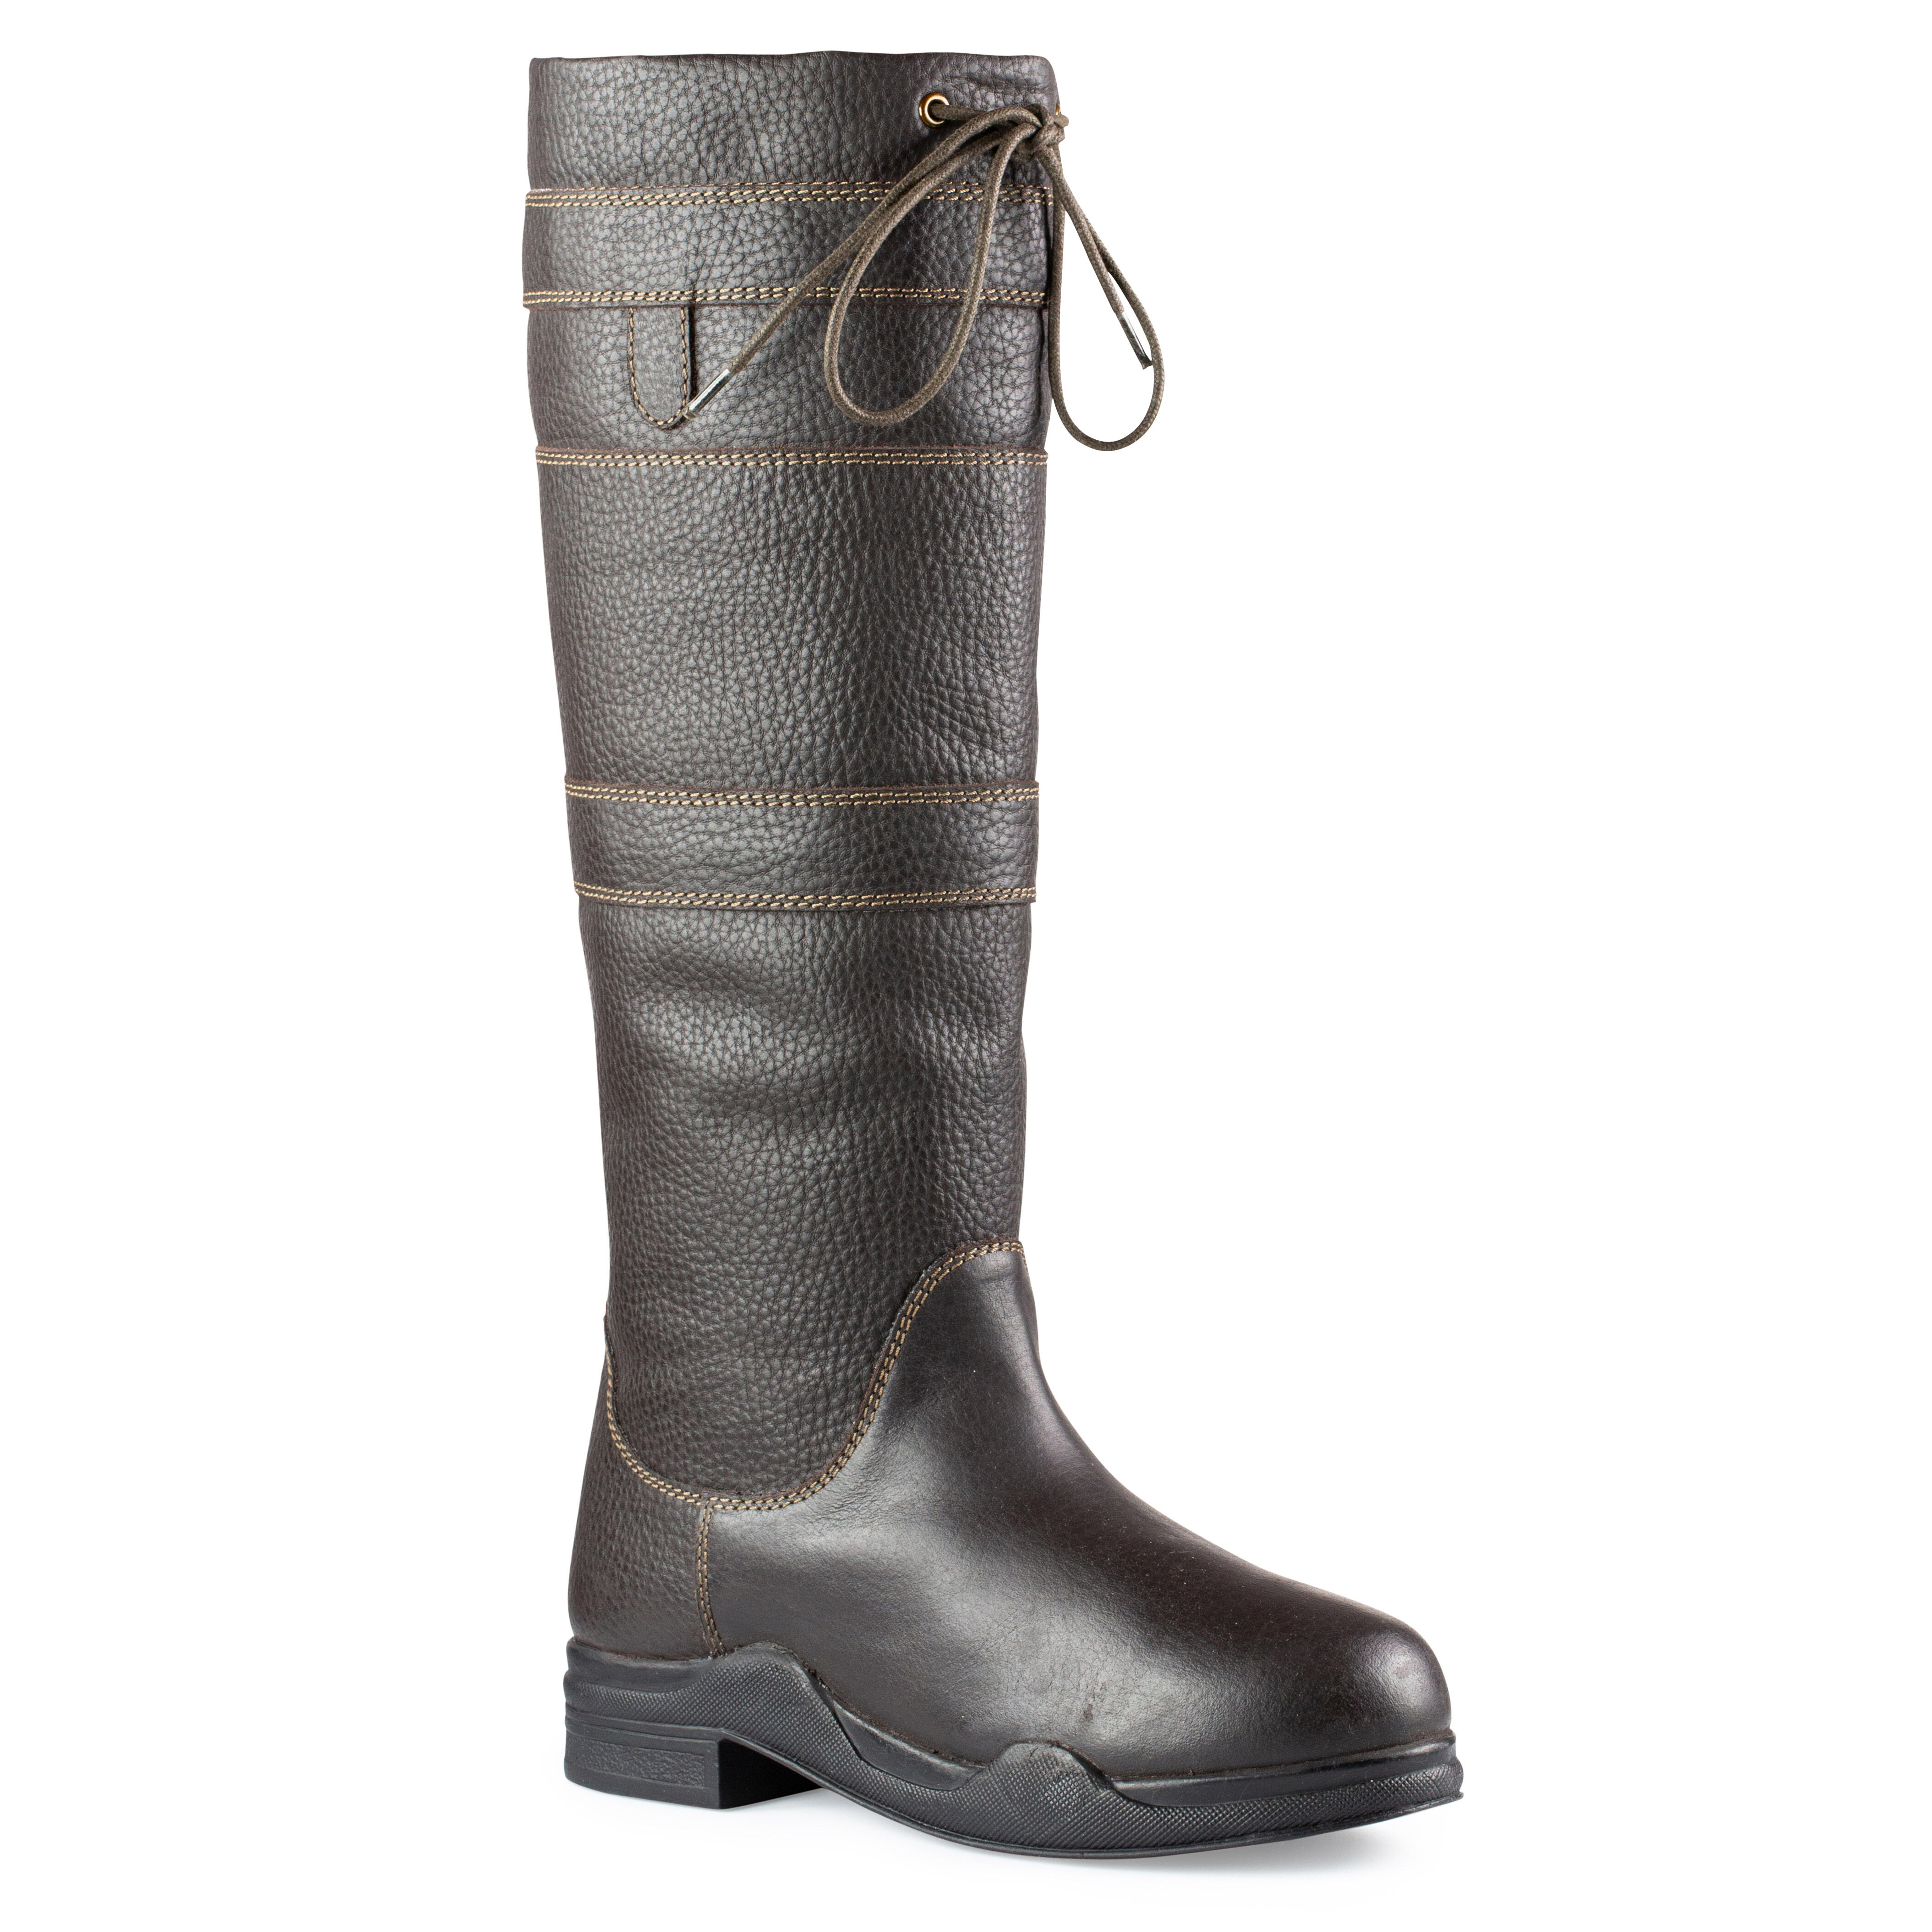 Muckers Yard Boots Horze Stable Boots